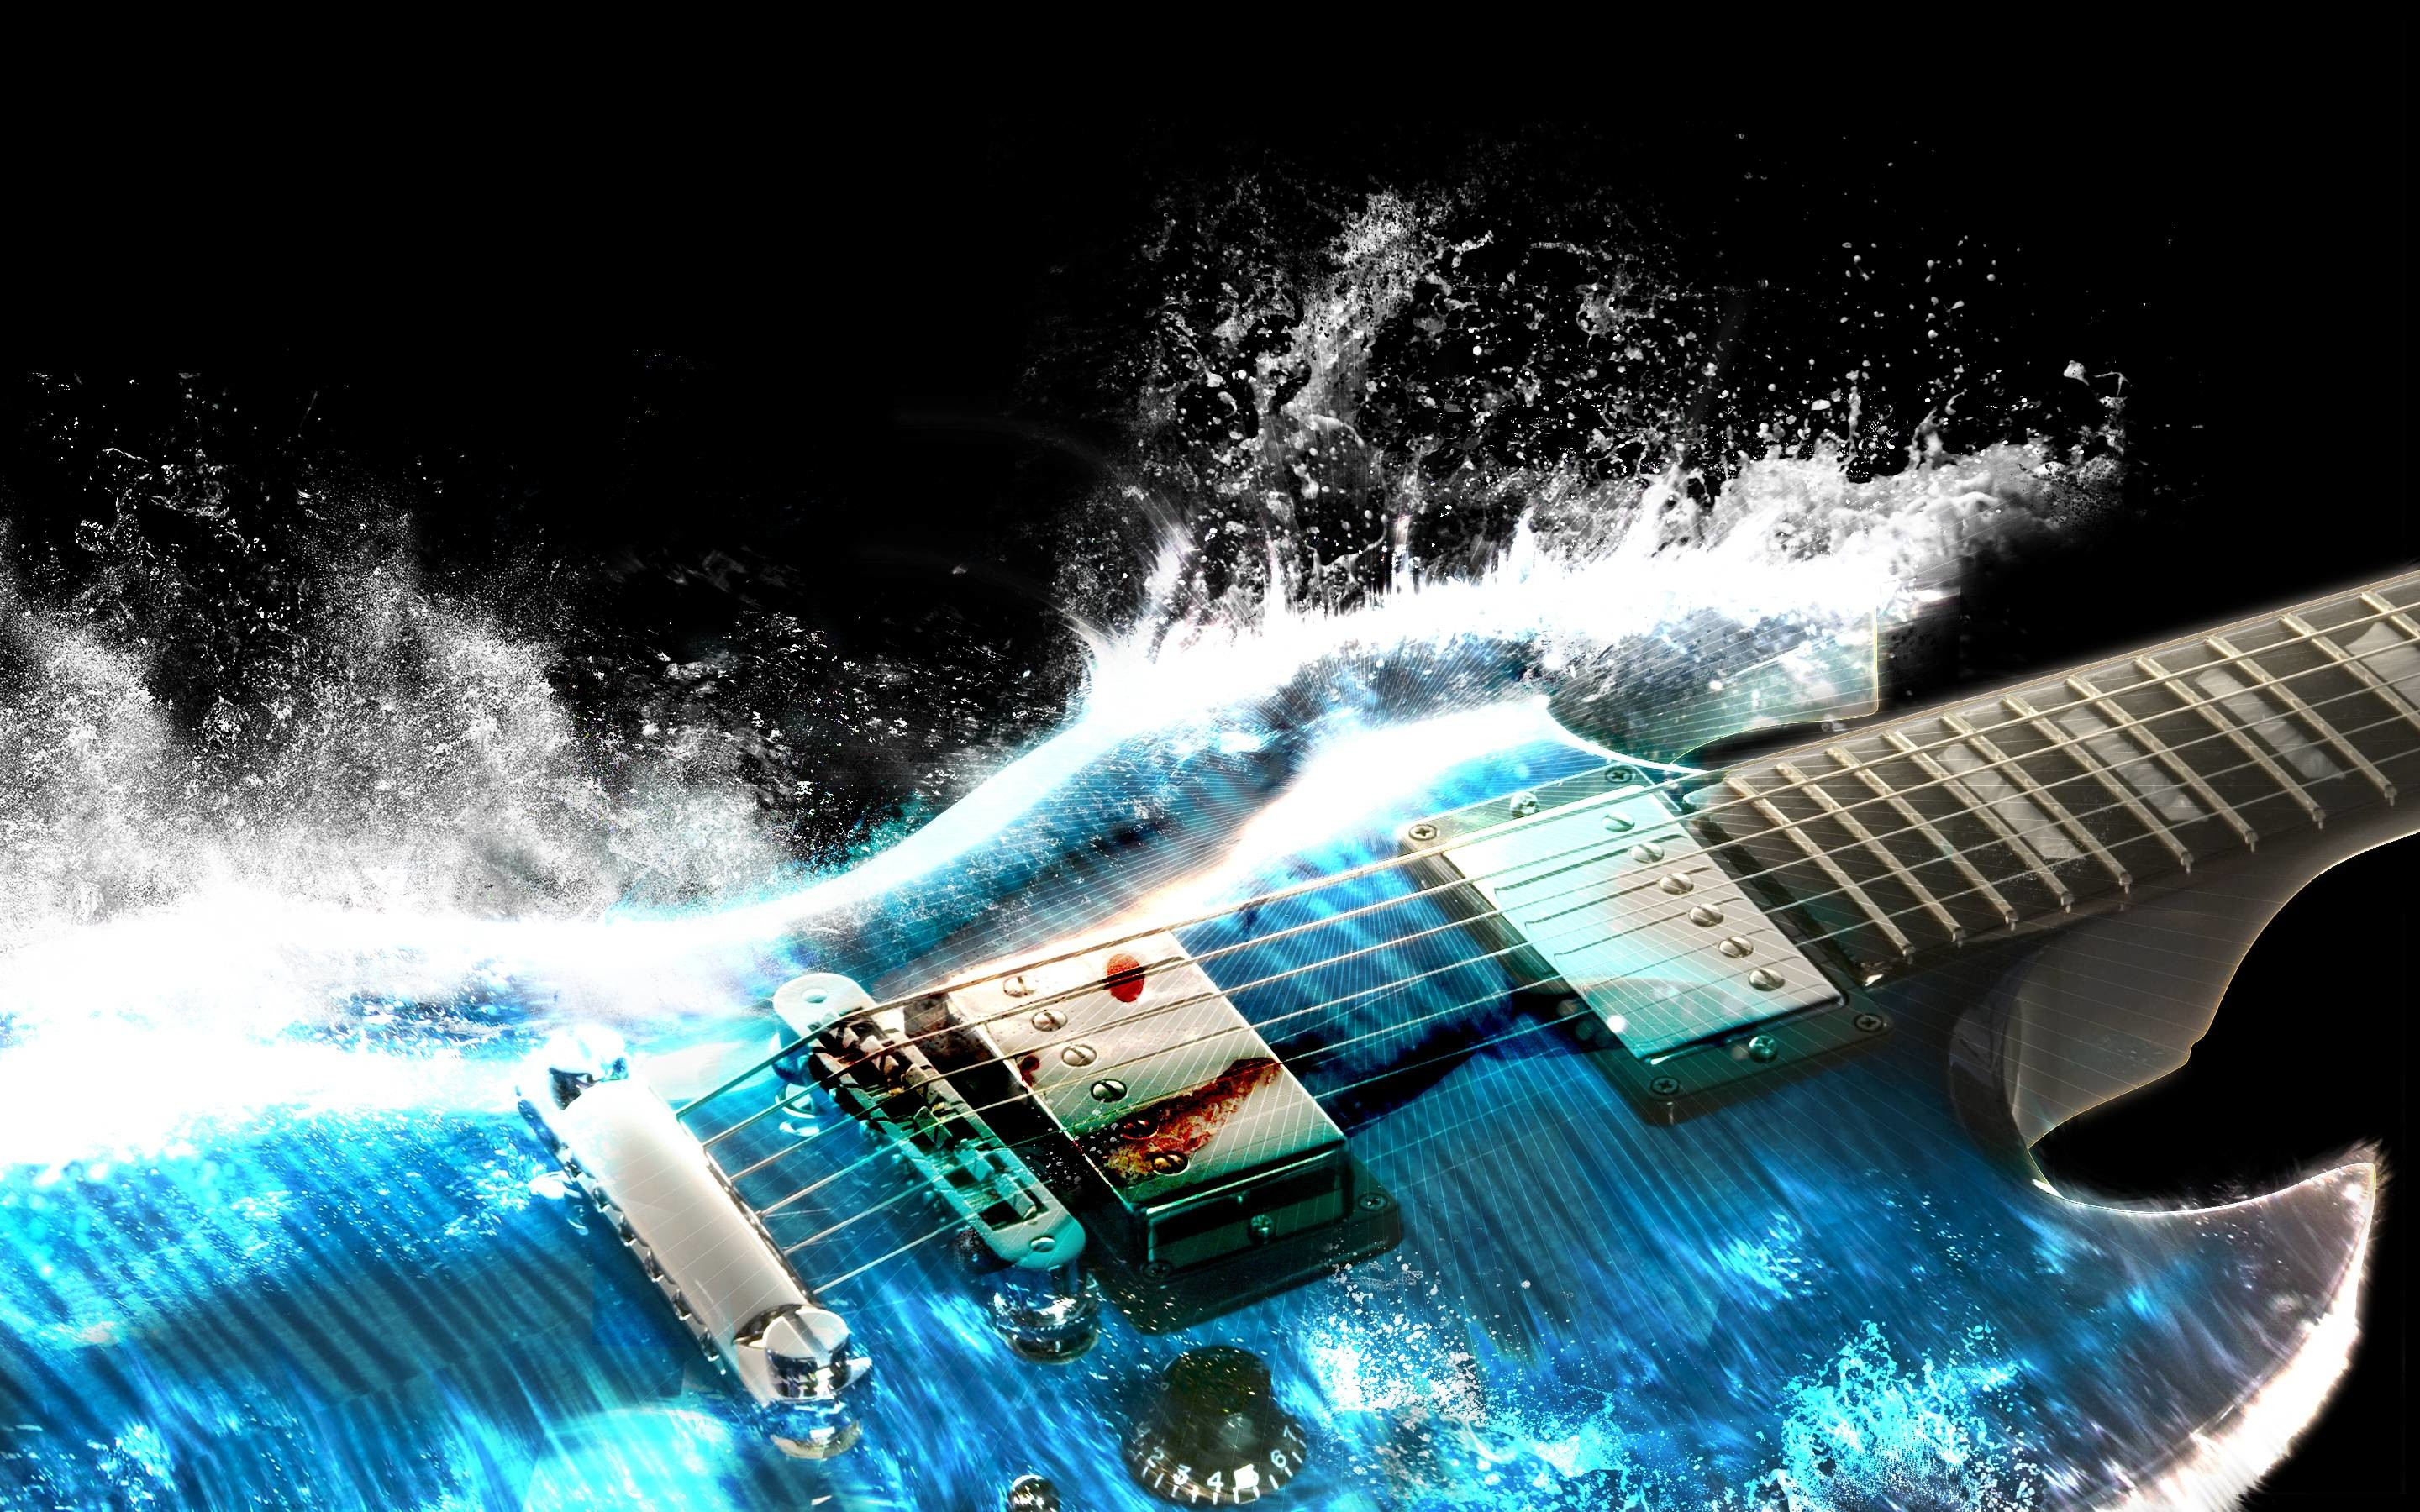 Hd Guitar Backgrounds Desktop Wallpapers Amazing Images Cool Background Photos 1080p Windows High Quality